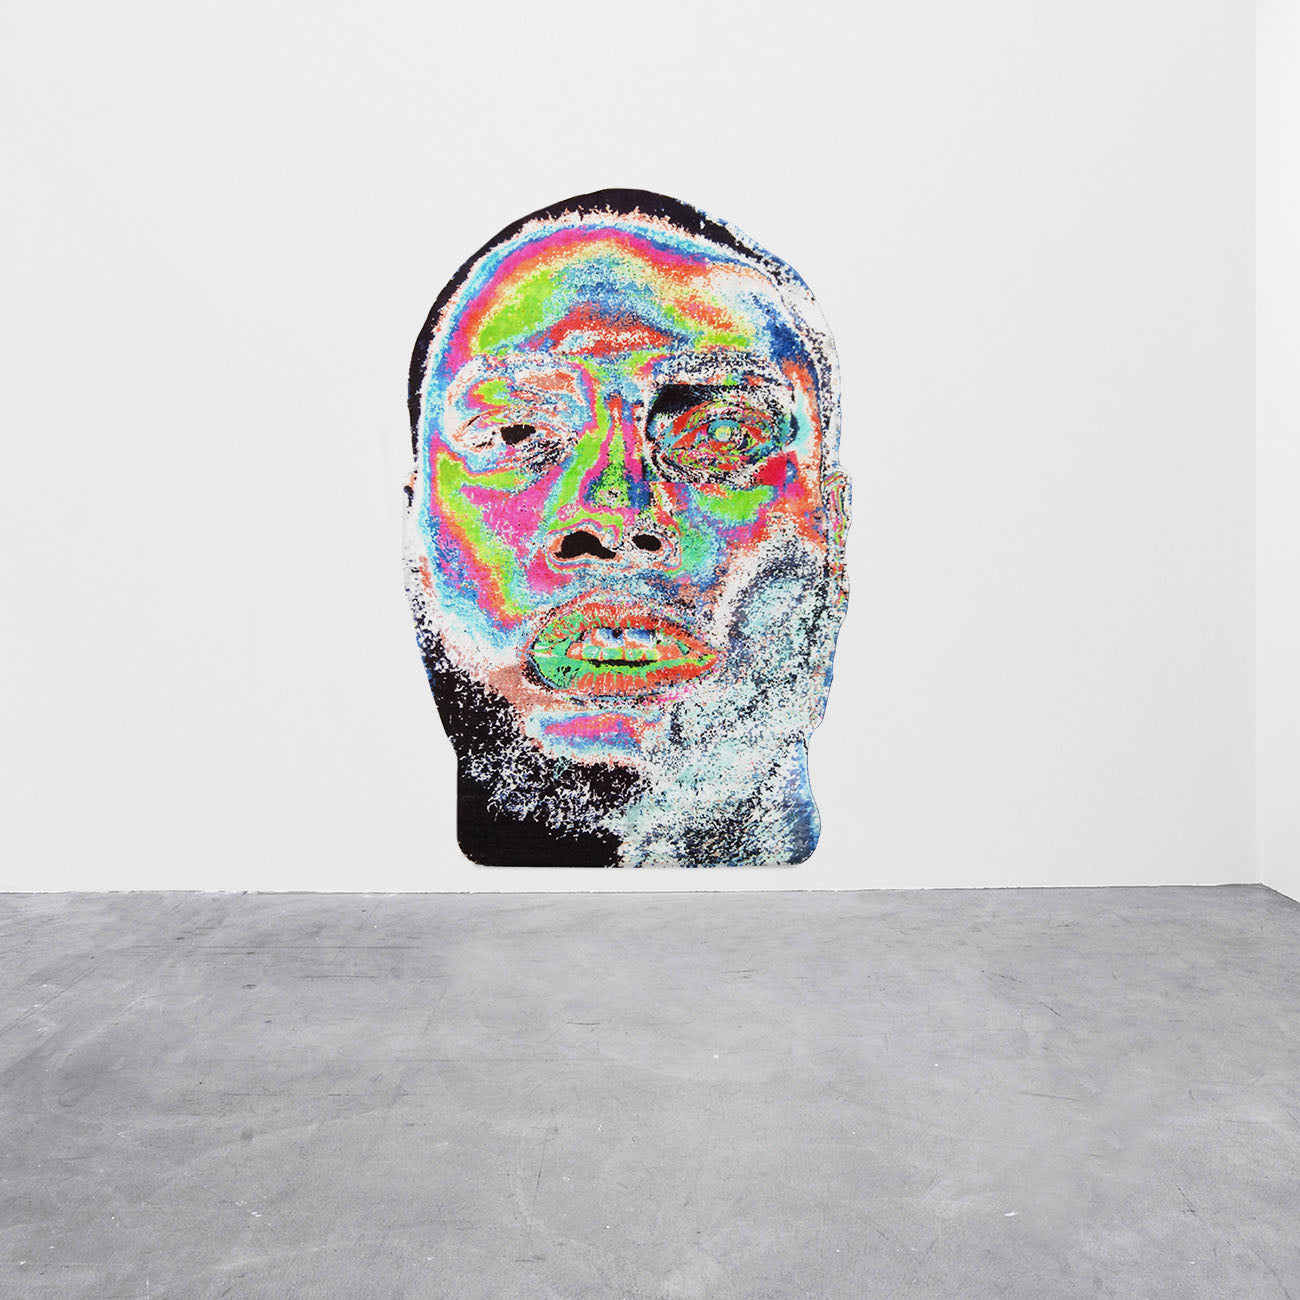 TONY OURSLER, UNTITLED, 2019 (QS)